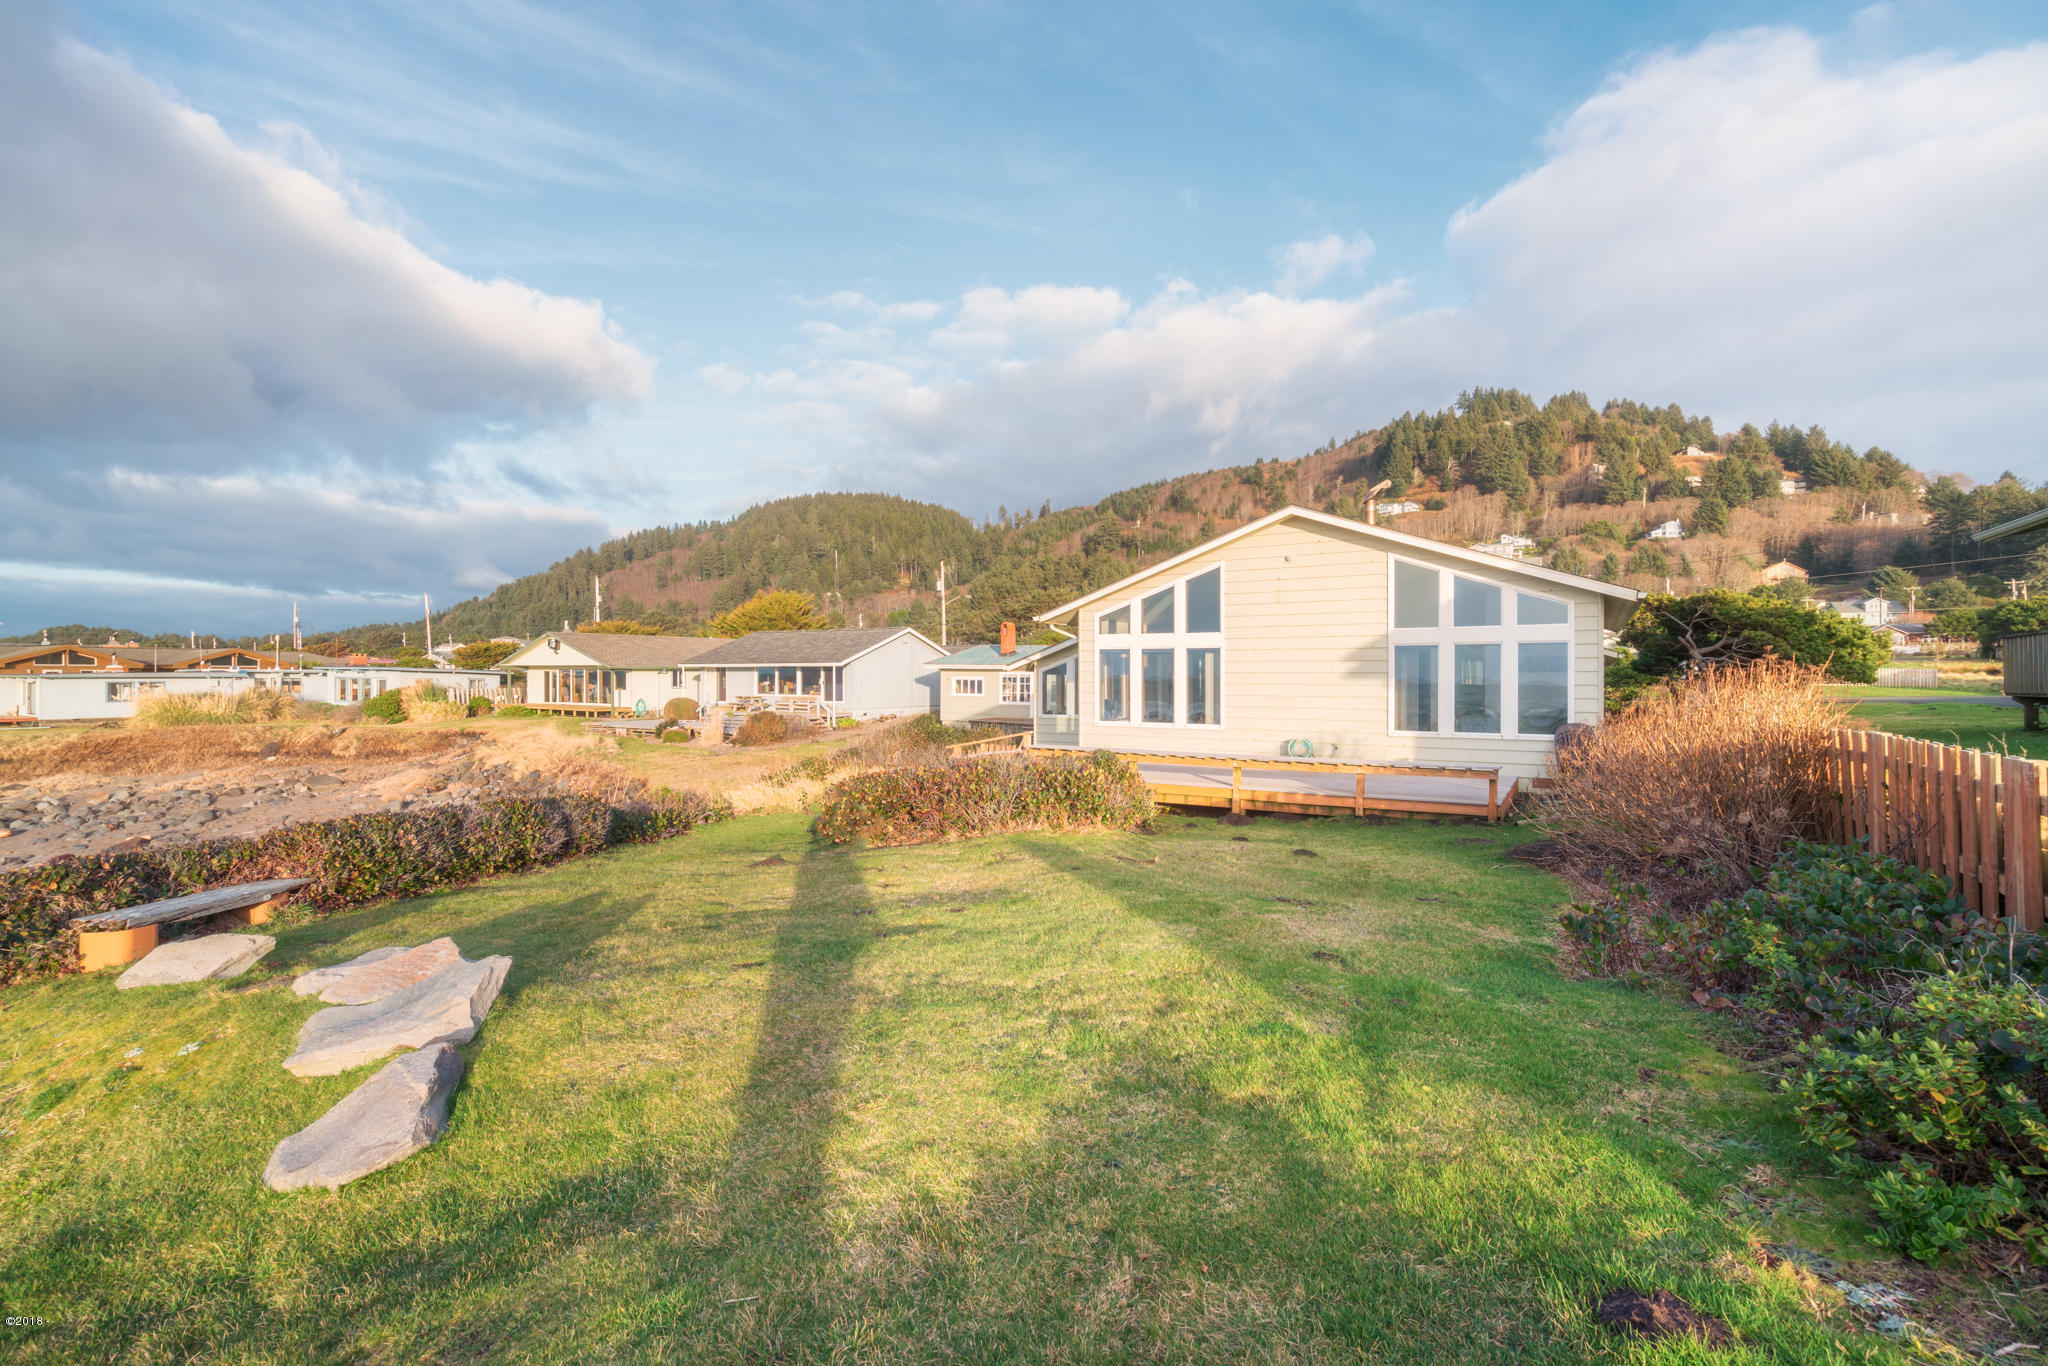 811 Ocean View Dr, Yachats, OR 97498 - 811-OceanviewDr-Web (21)